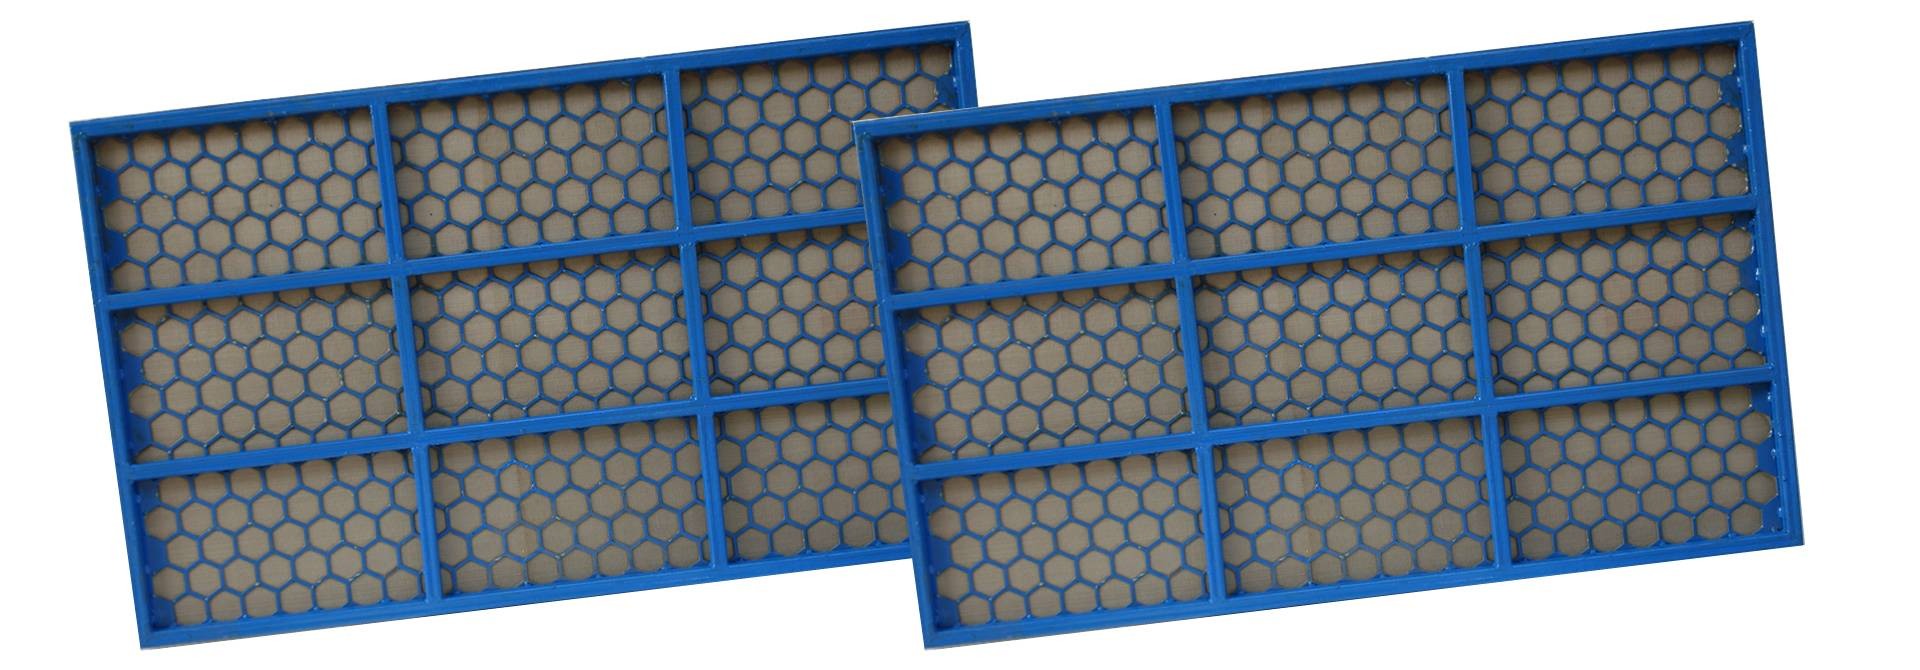 Two pieces of flat shale shaker screen with blue frame.